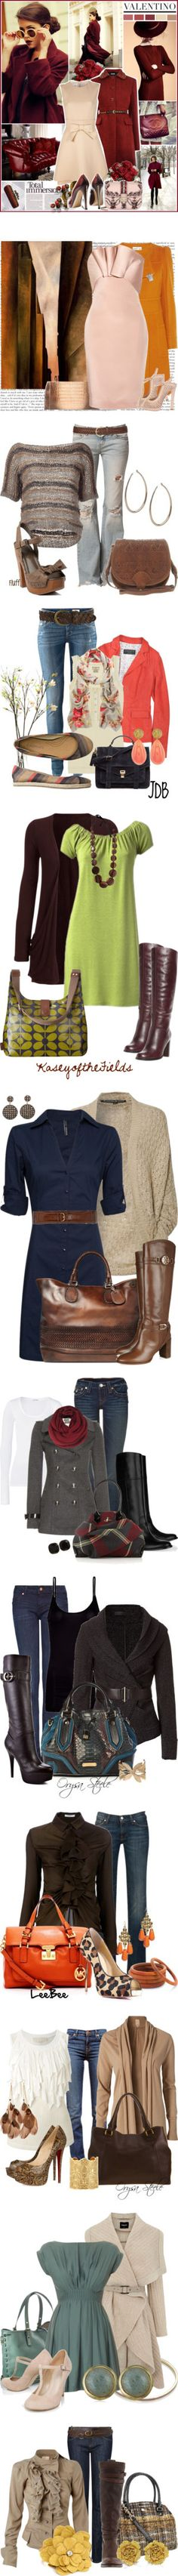 """""""Winter style"""" by veronica-holloman-wilkinson ❤ liked on Polyvore"""